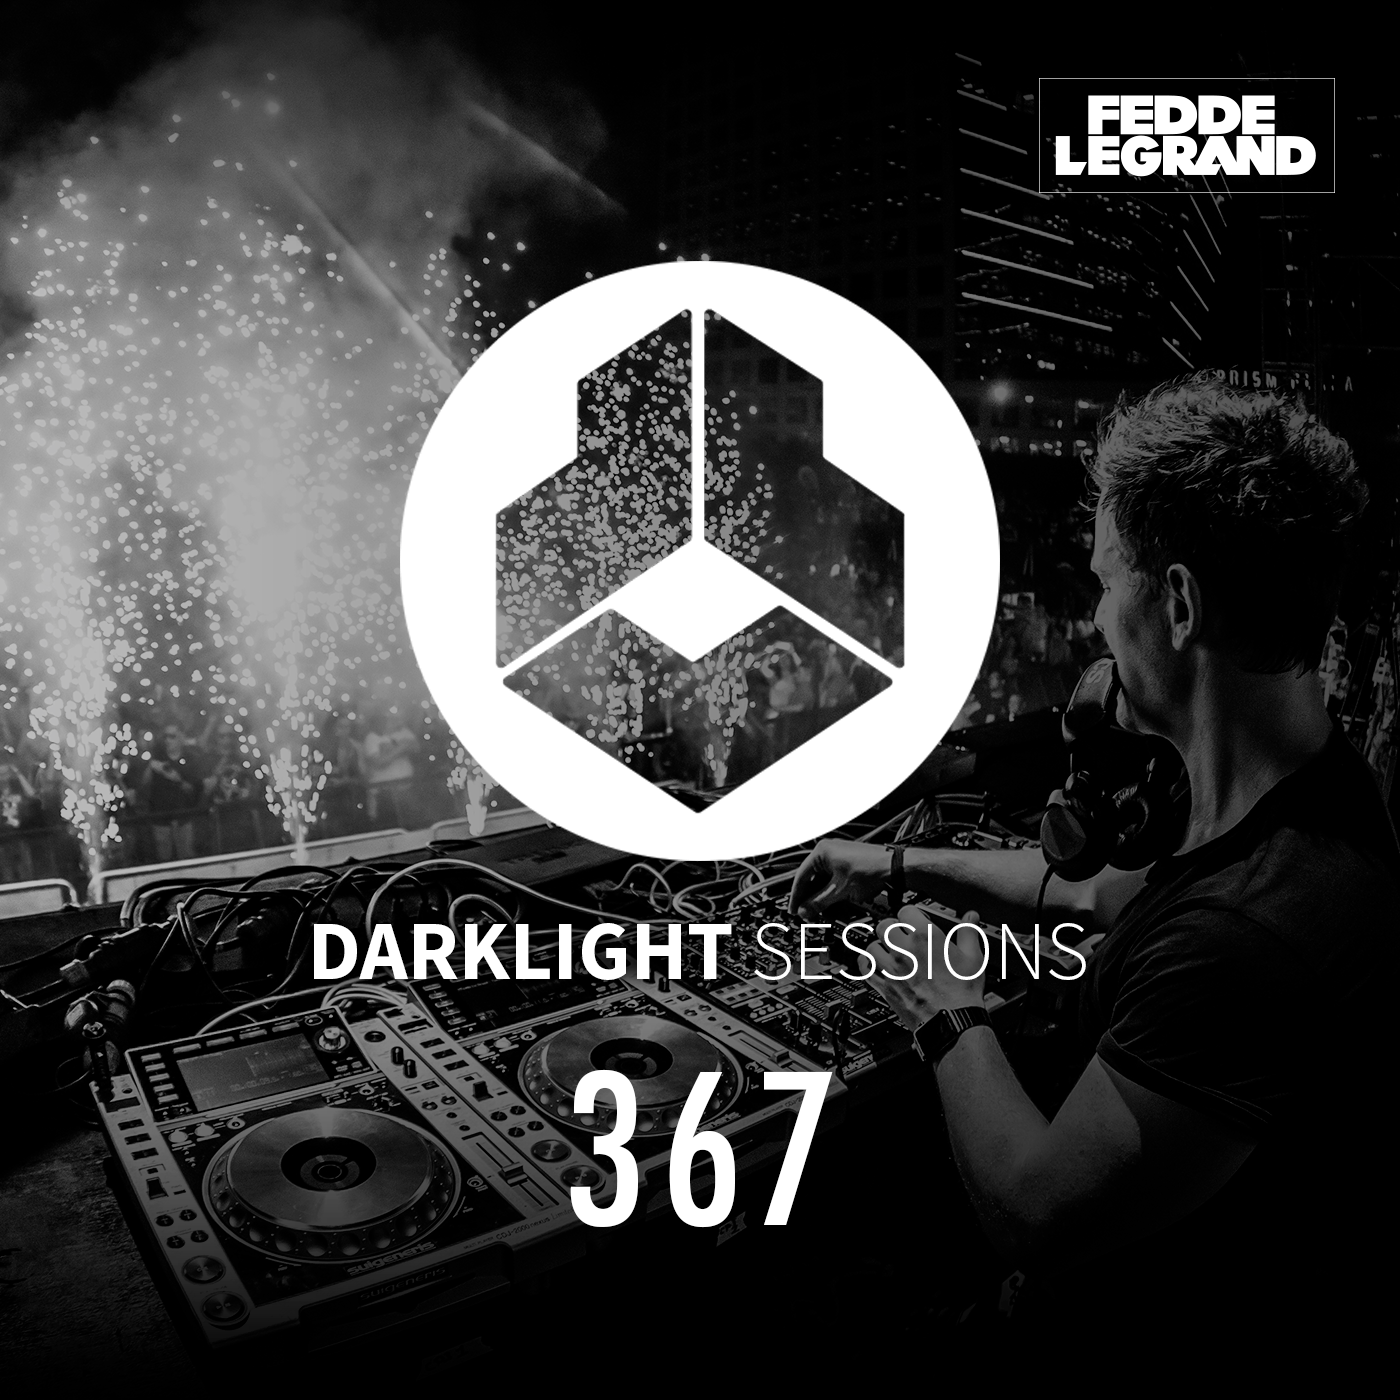 Darklight Sessions 367